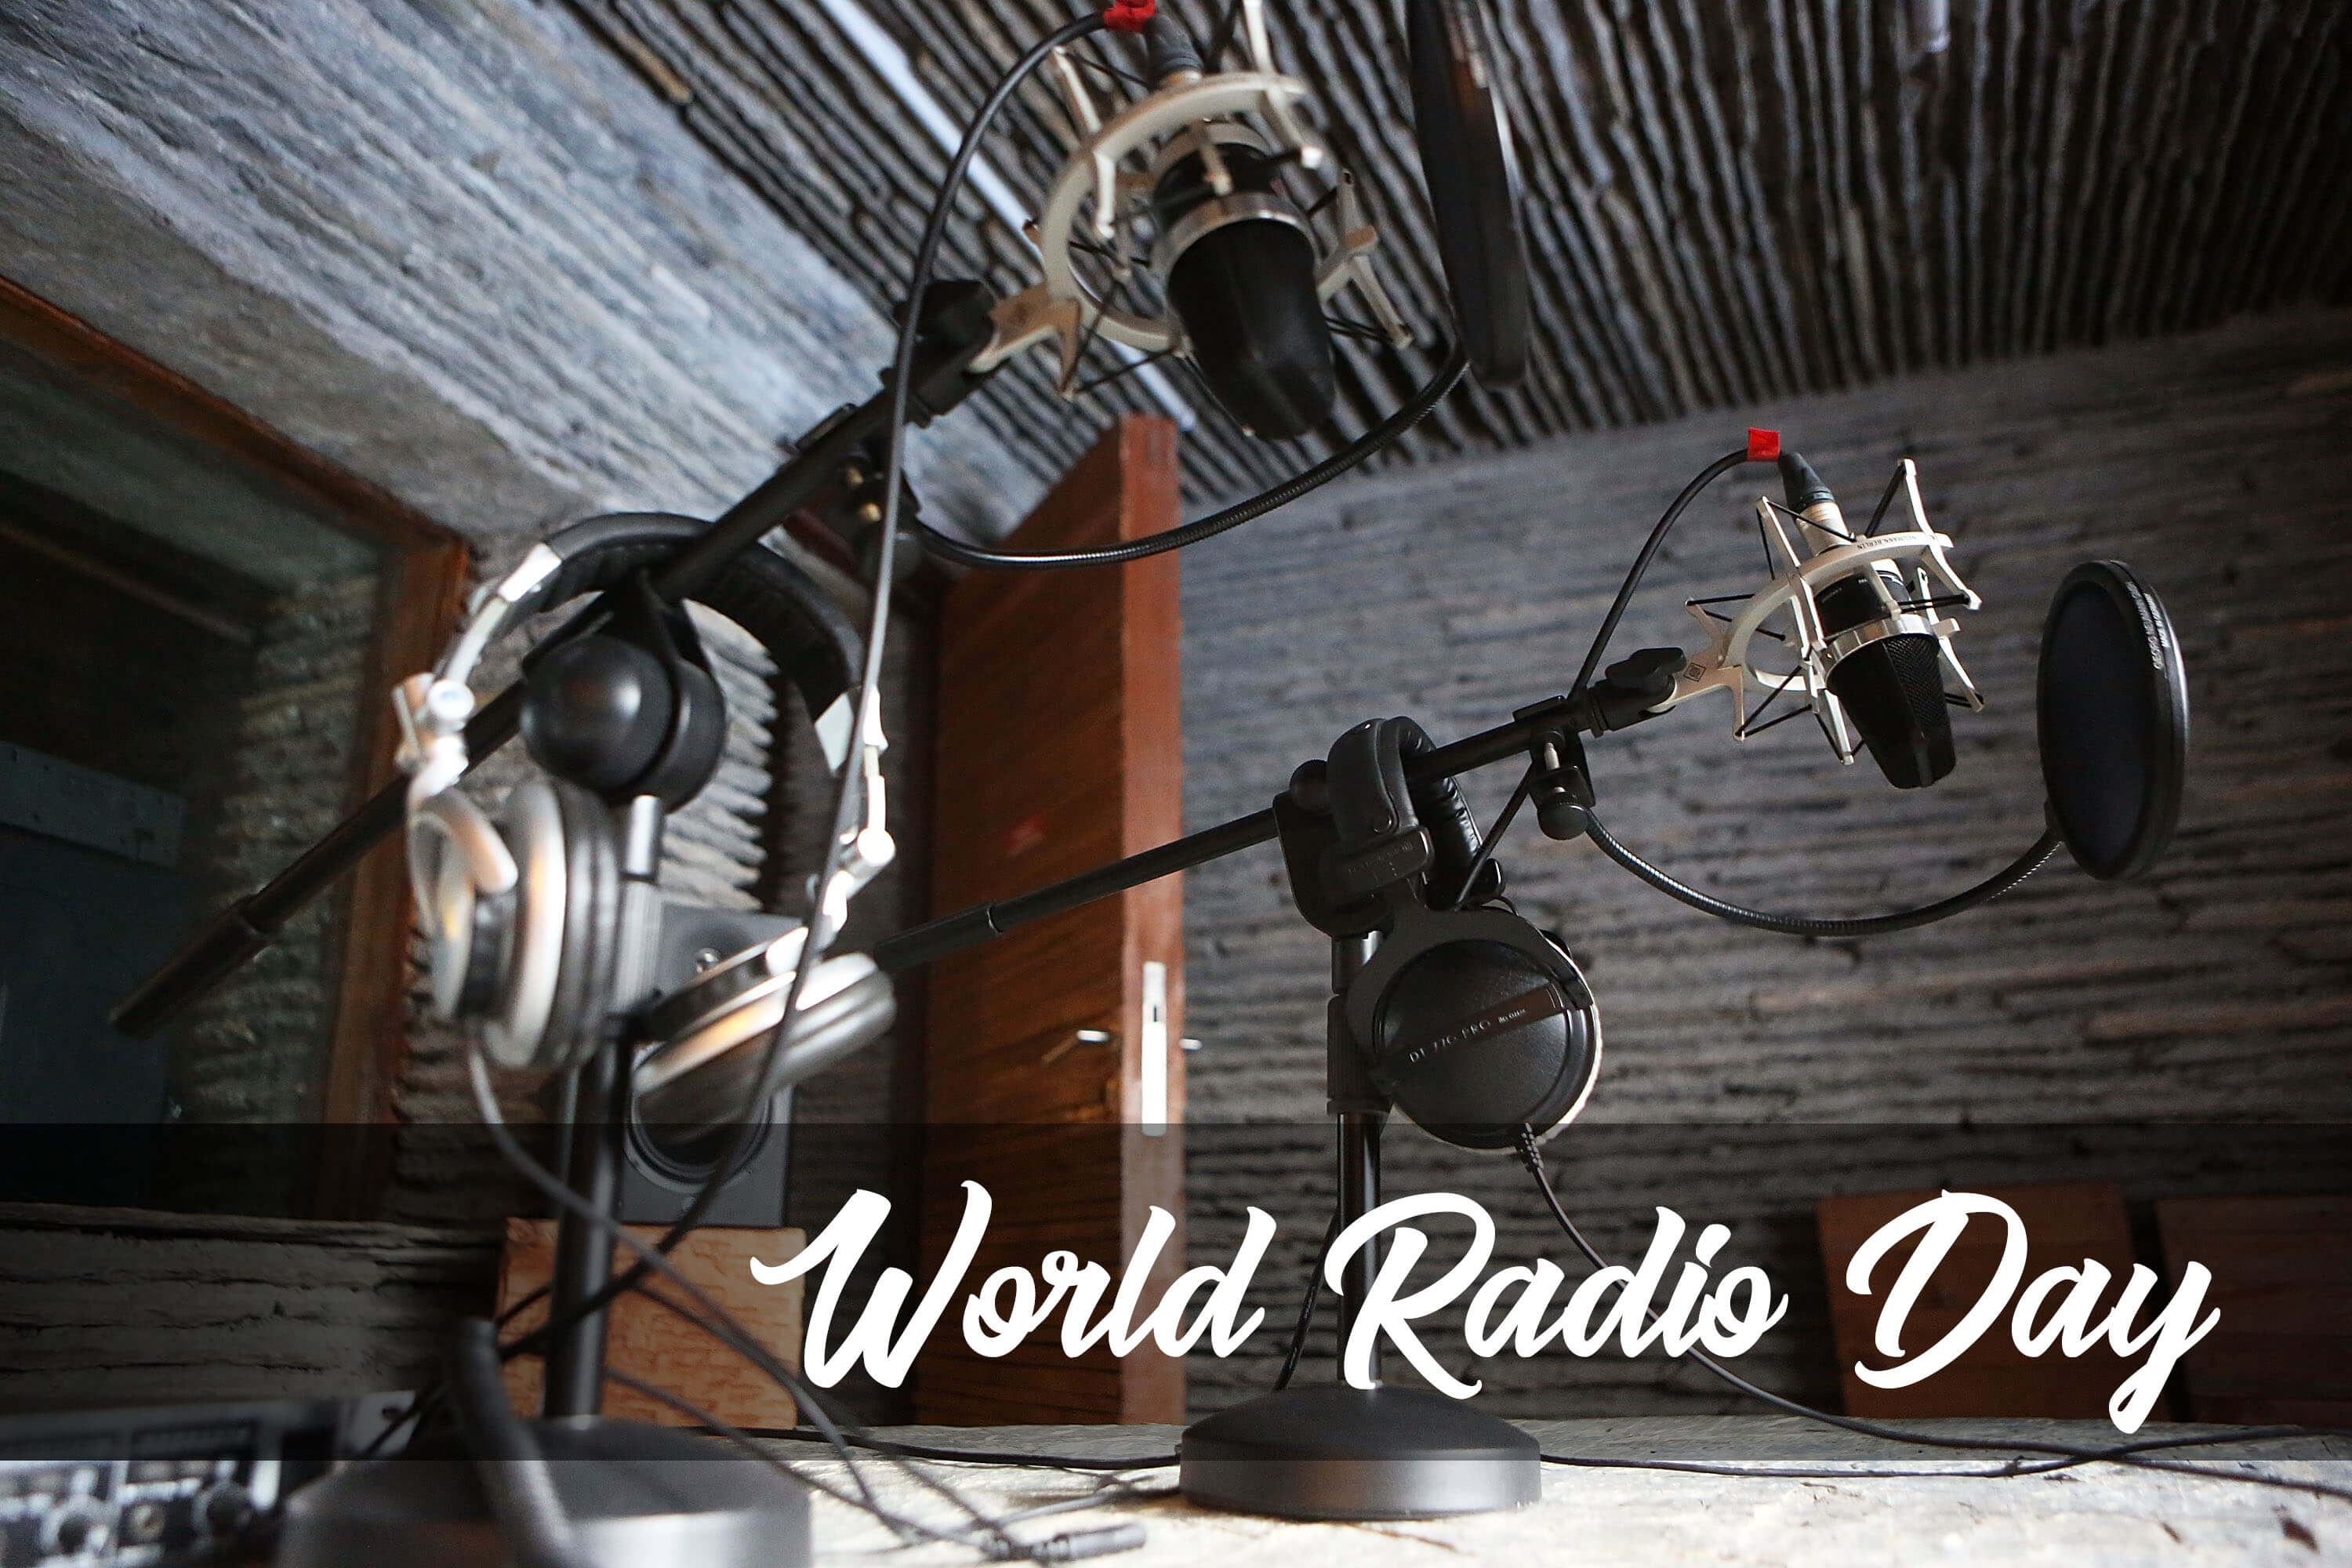 world radio day new desktop background latest large hd wallpaper